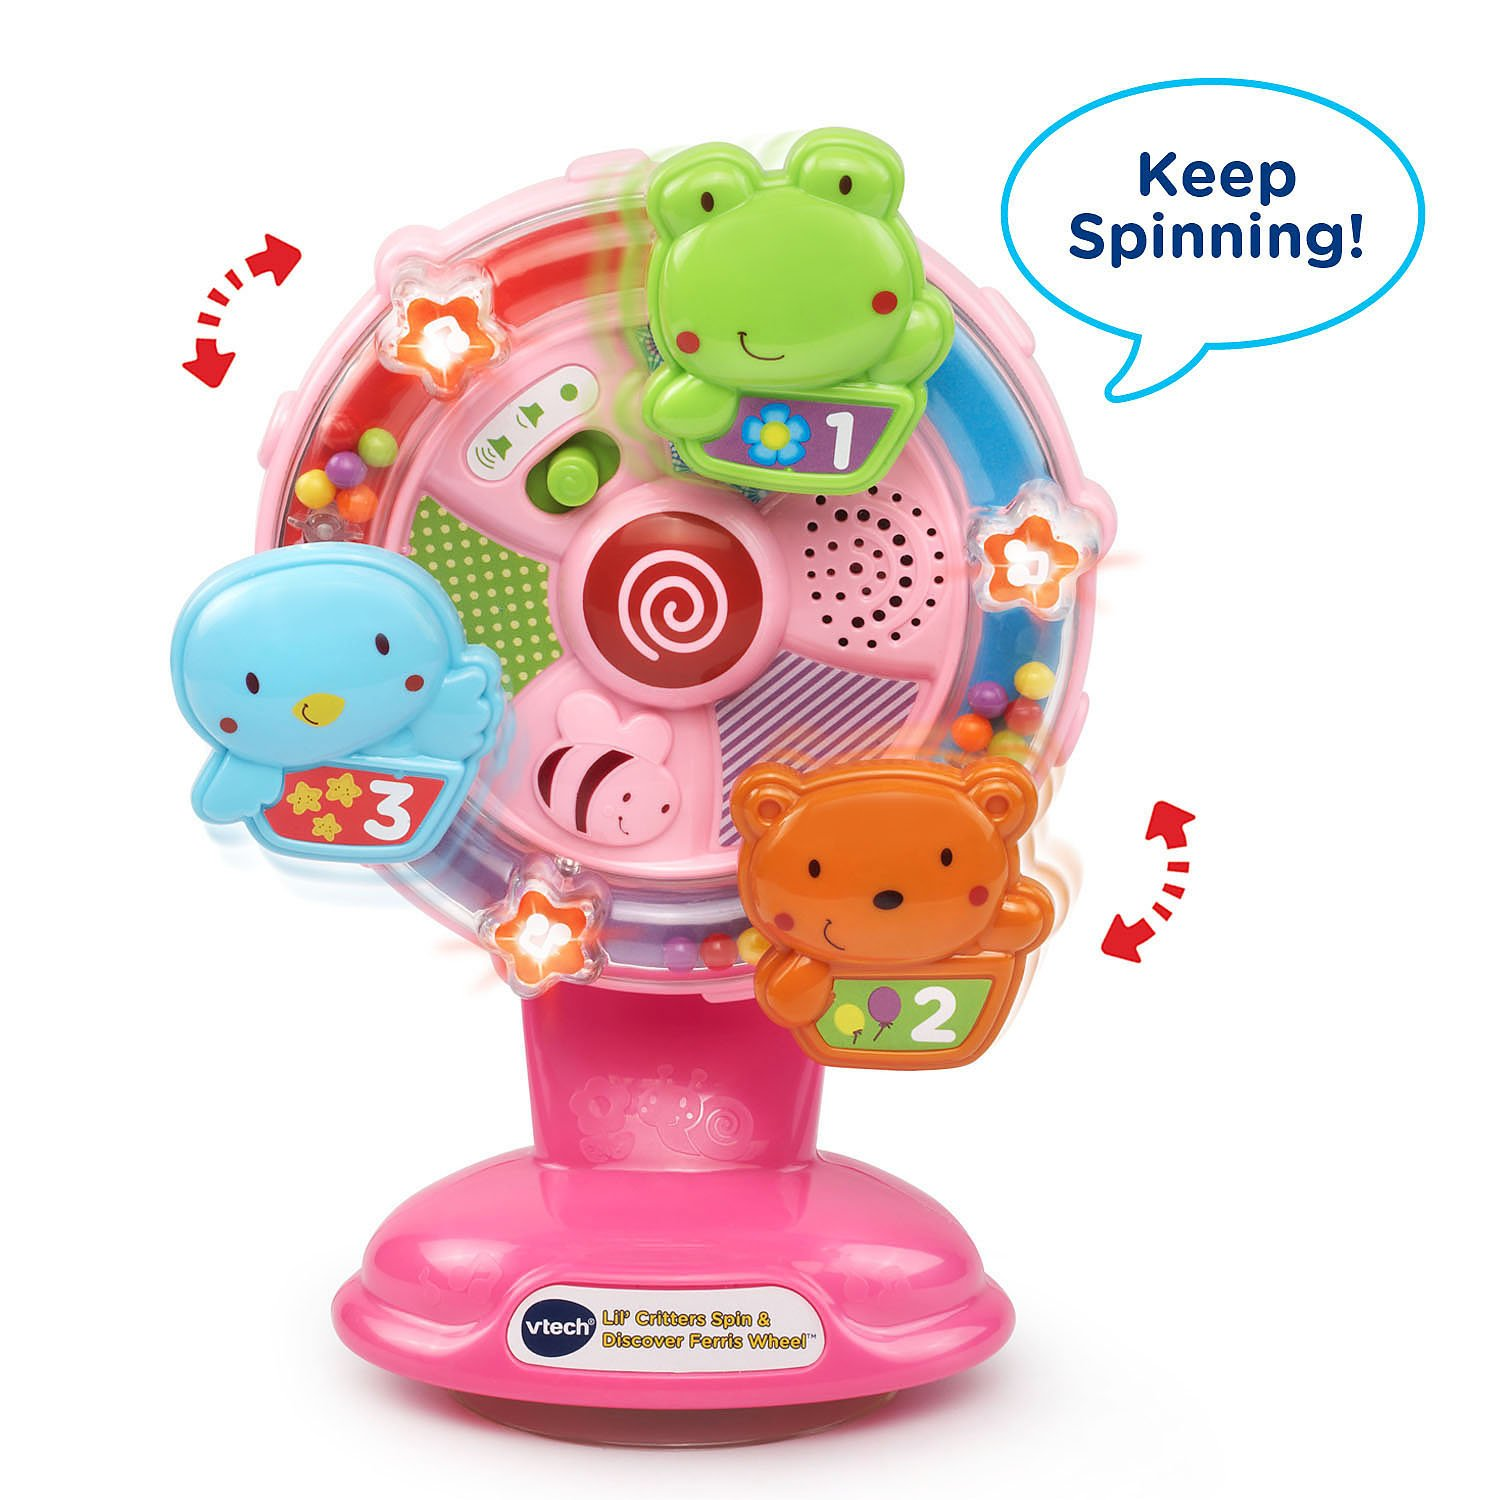 VTech Lil' Critters Spin and Discover Ferris Wheels, Pink (Amazon Exclusive) by VTech (Image #2)